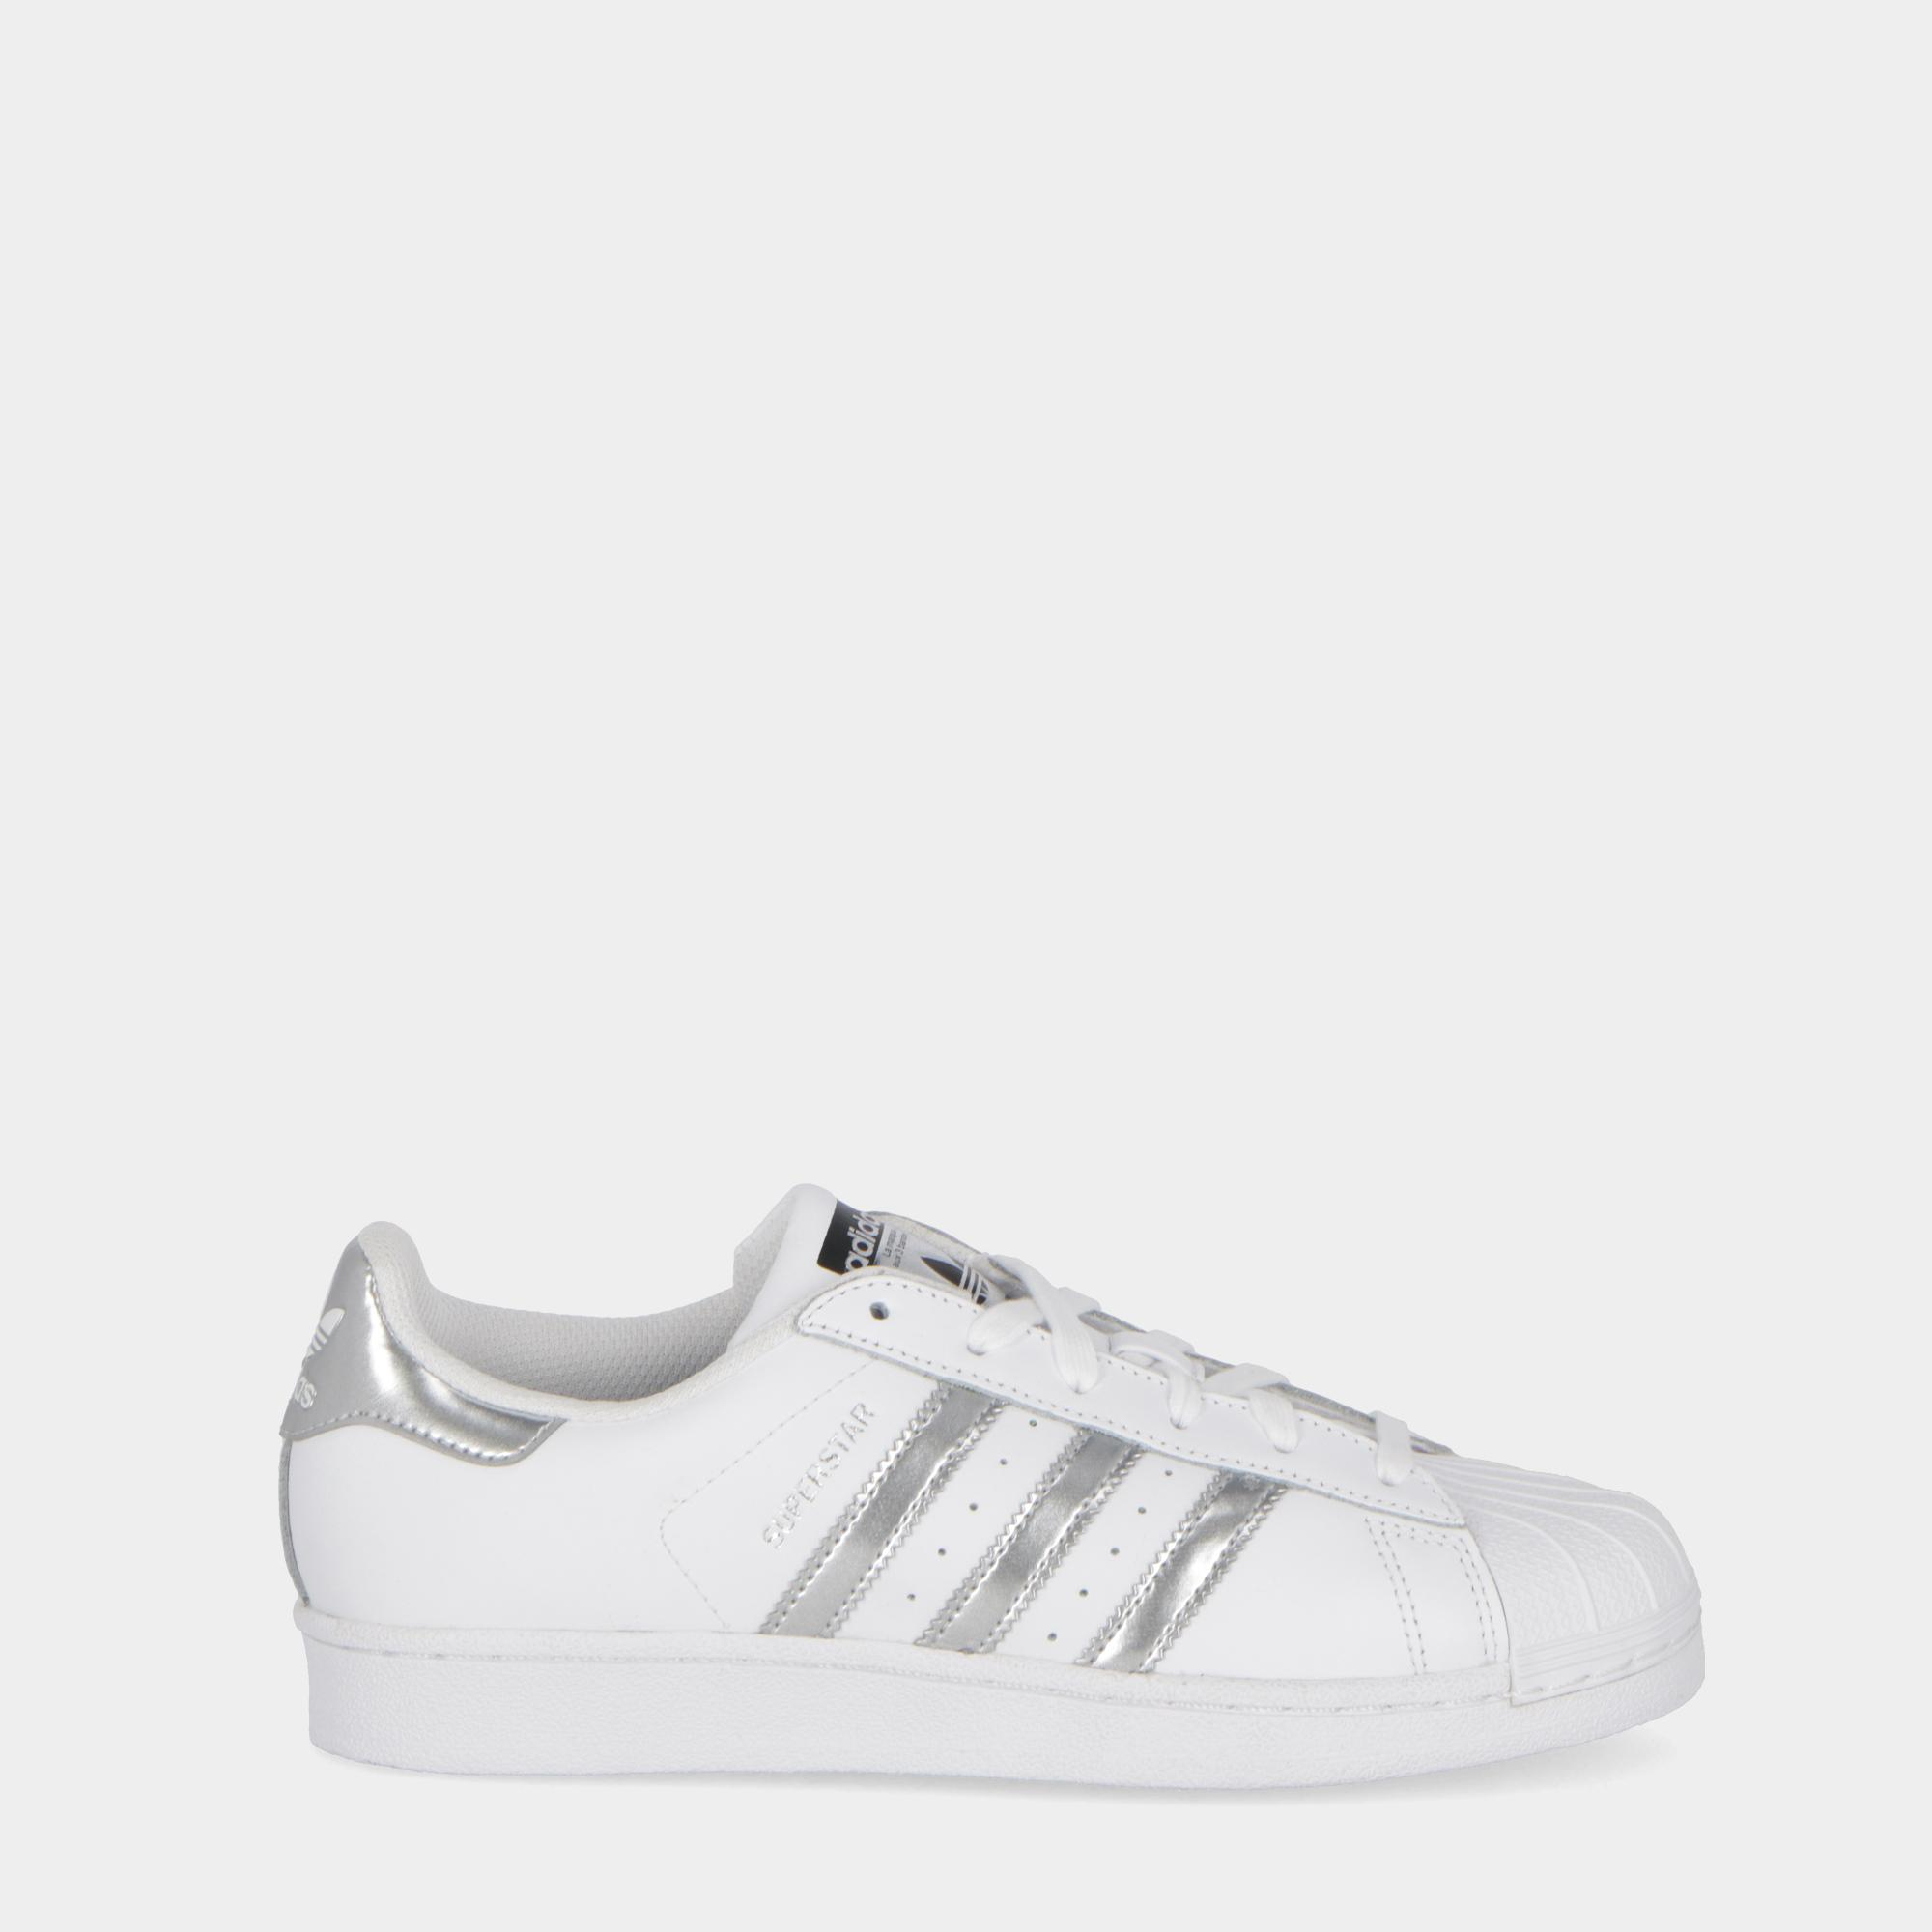 buy online eaee1 01289 Adidas Superstar White silver black